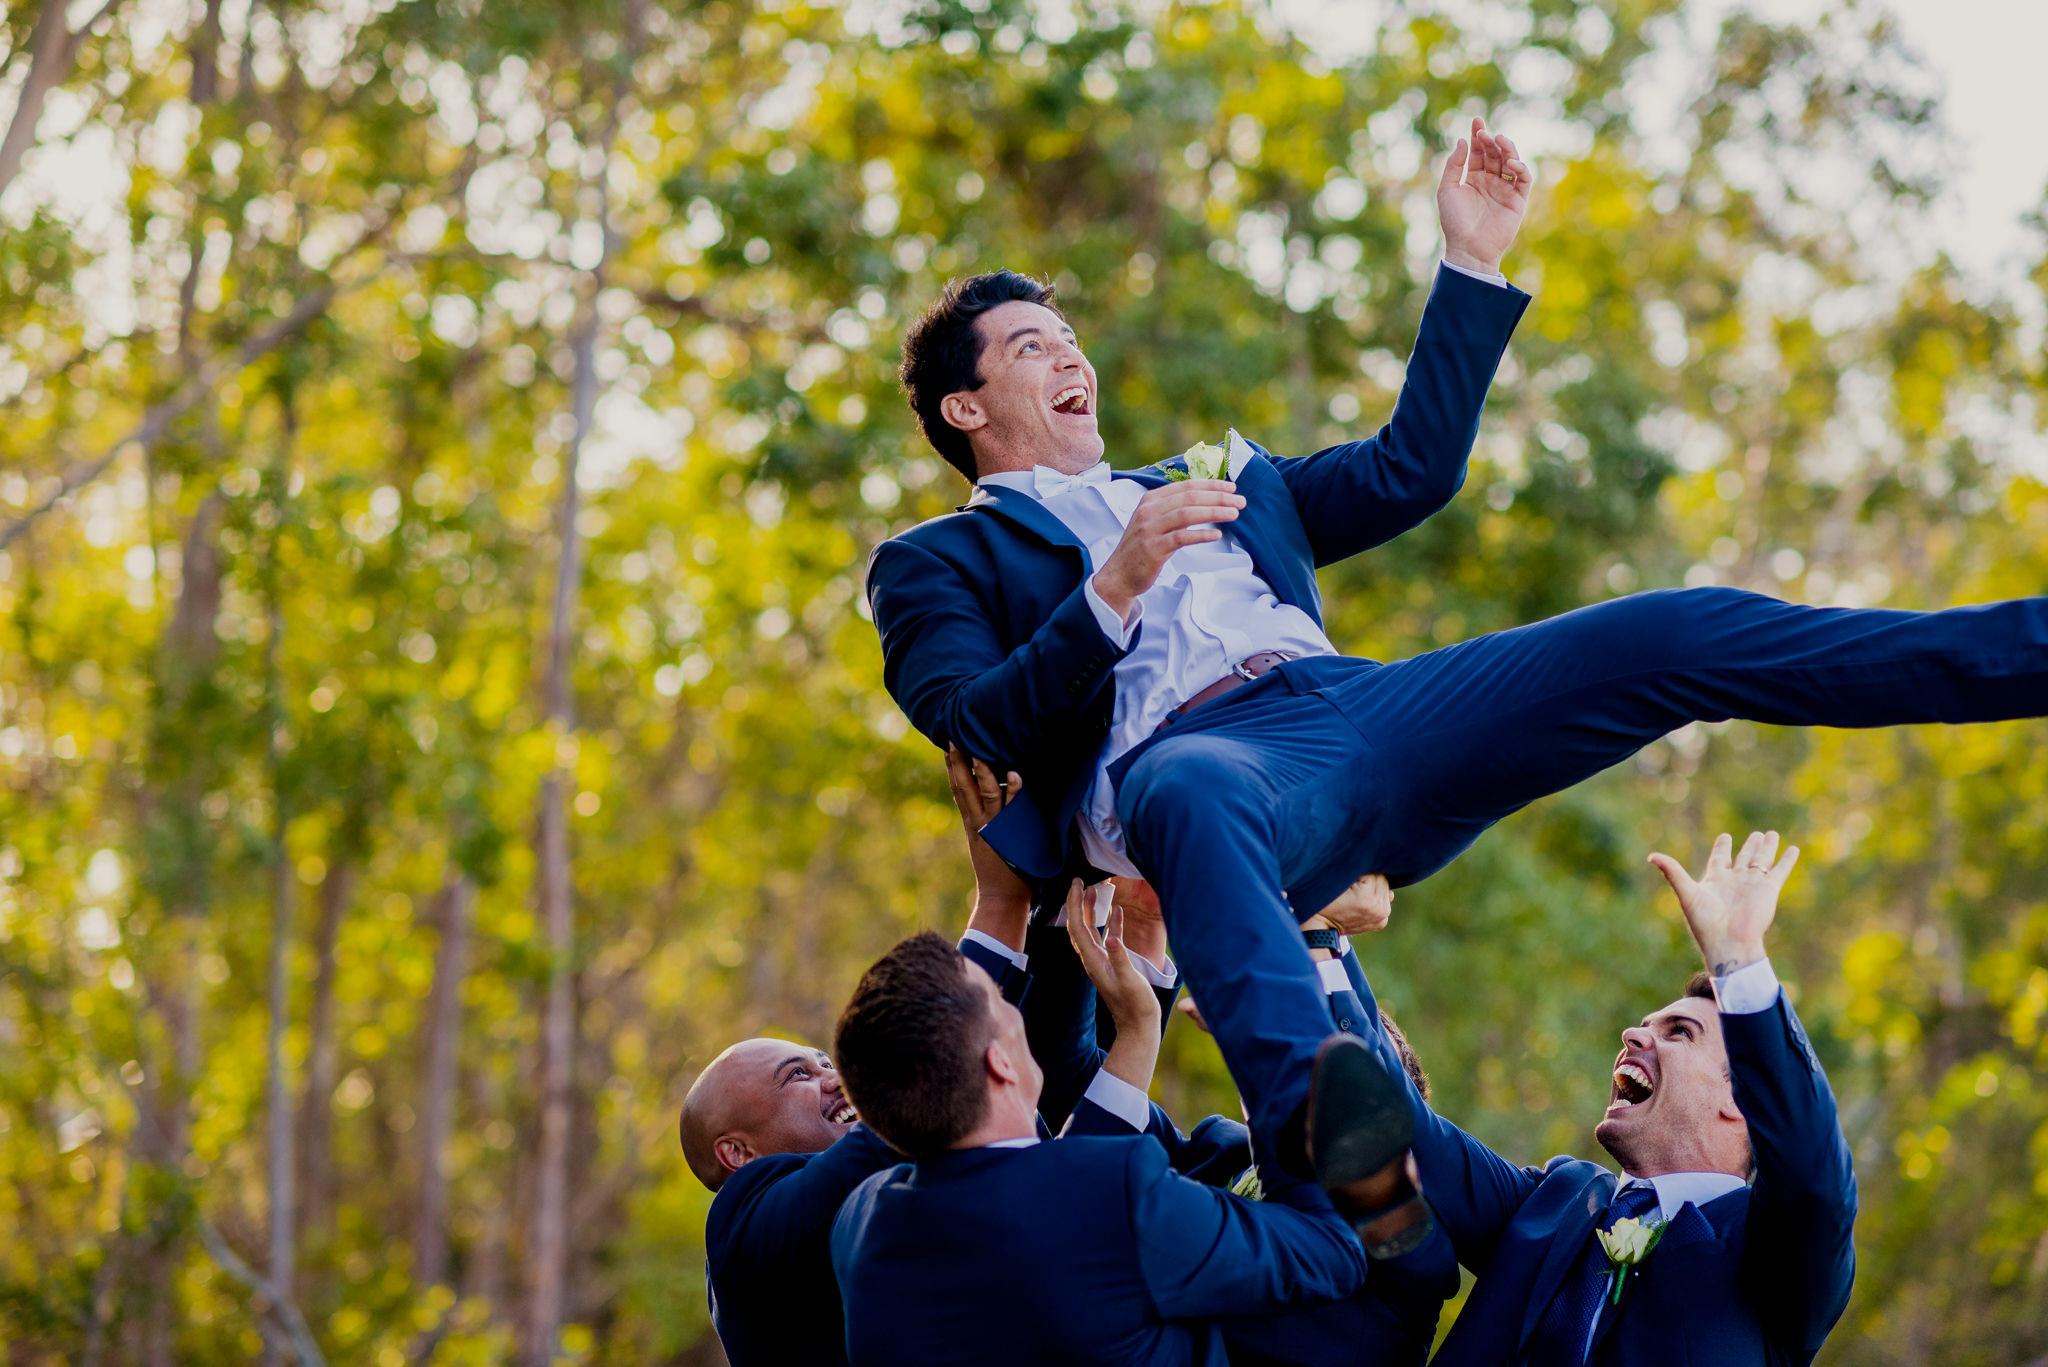 A group of groomsmen throw a newlywed groom in the air